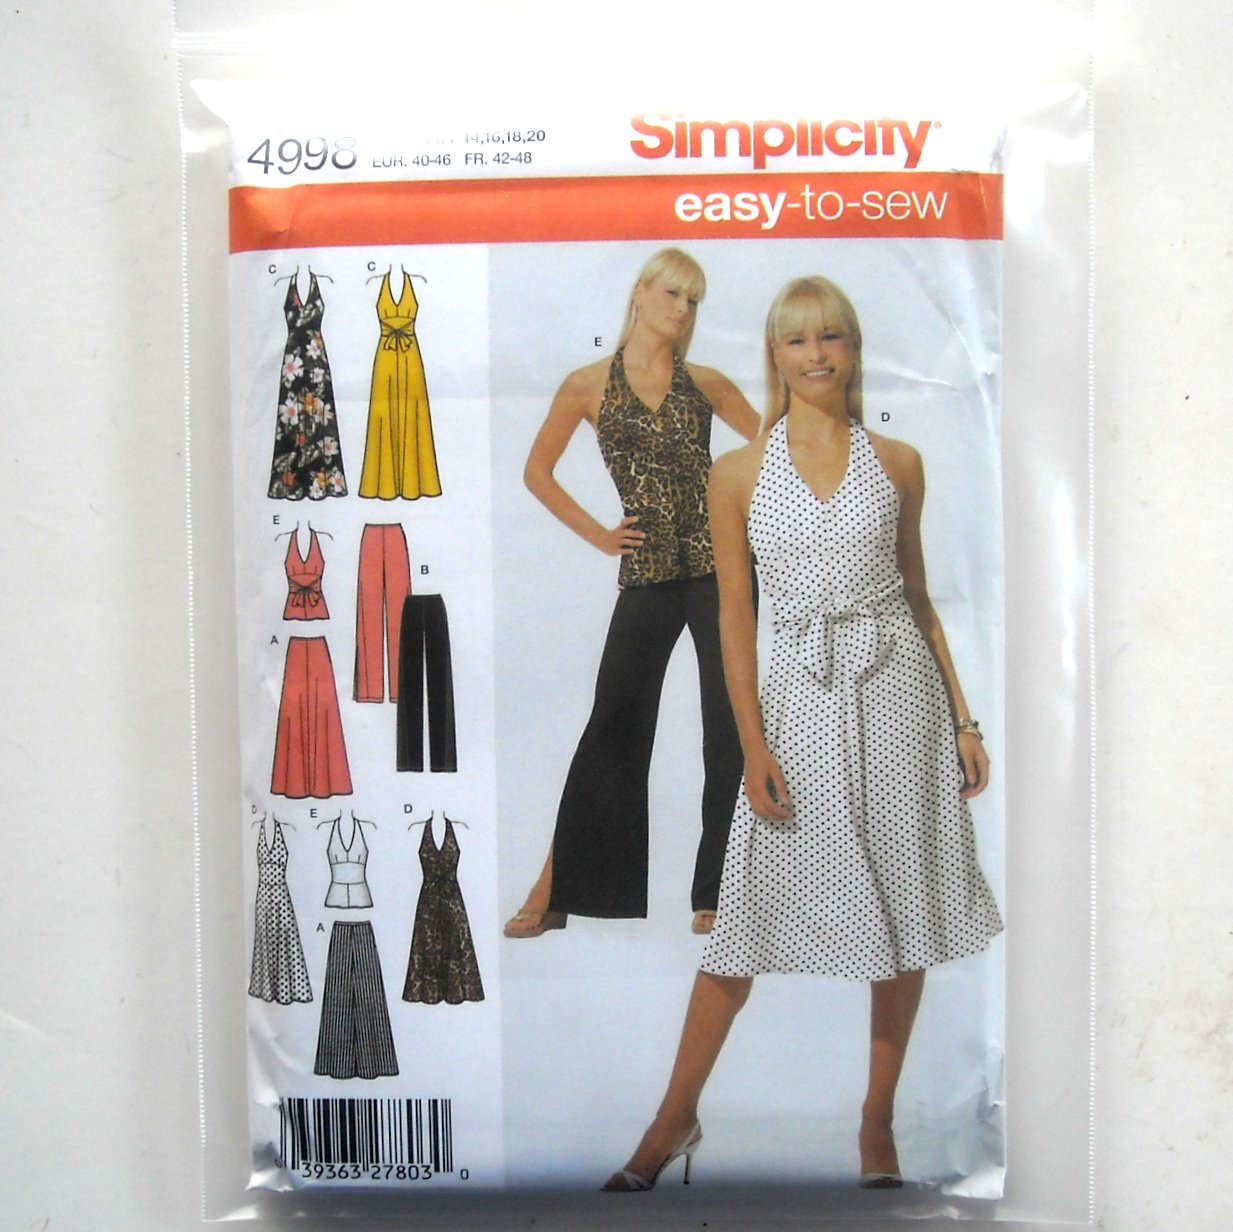 Misses Skirts Pants Dress Easy 14 16 18 20 Simplicity Sewing Pattern 4998